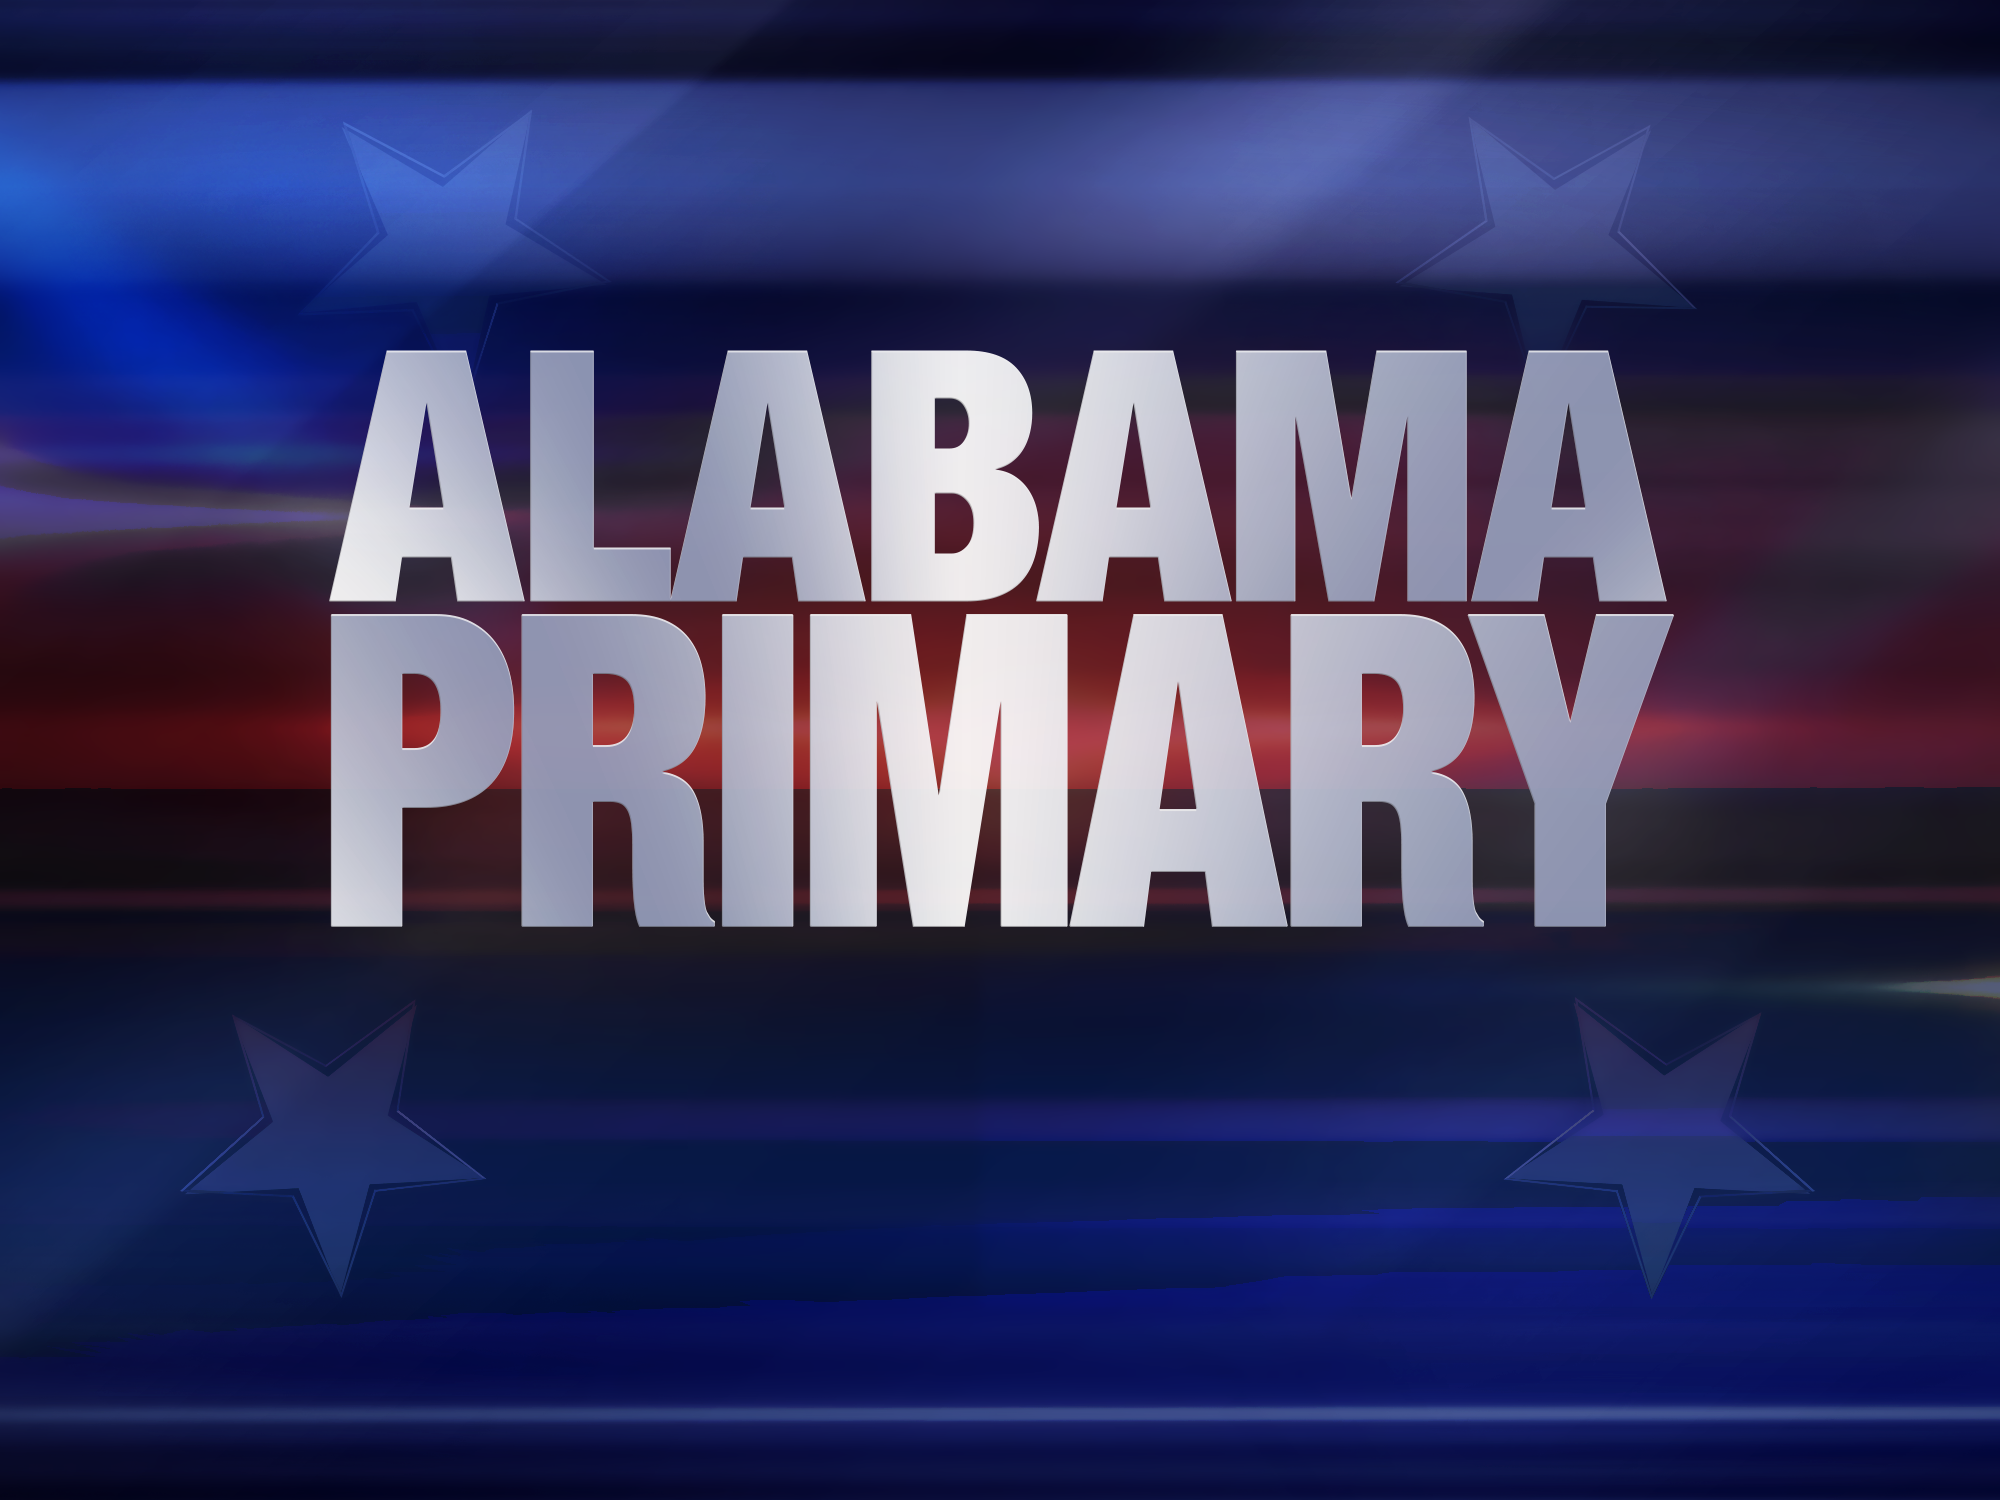 Bill Clinton to campaign in Alabama for Hillary Clinton